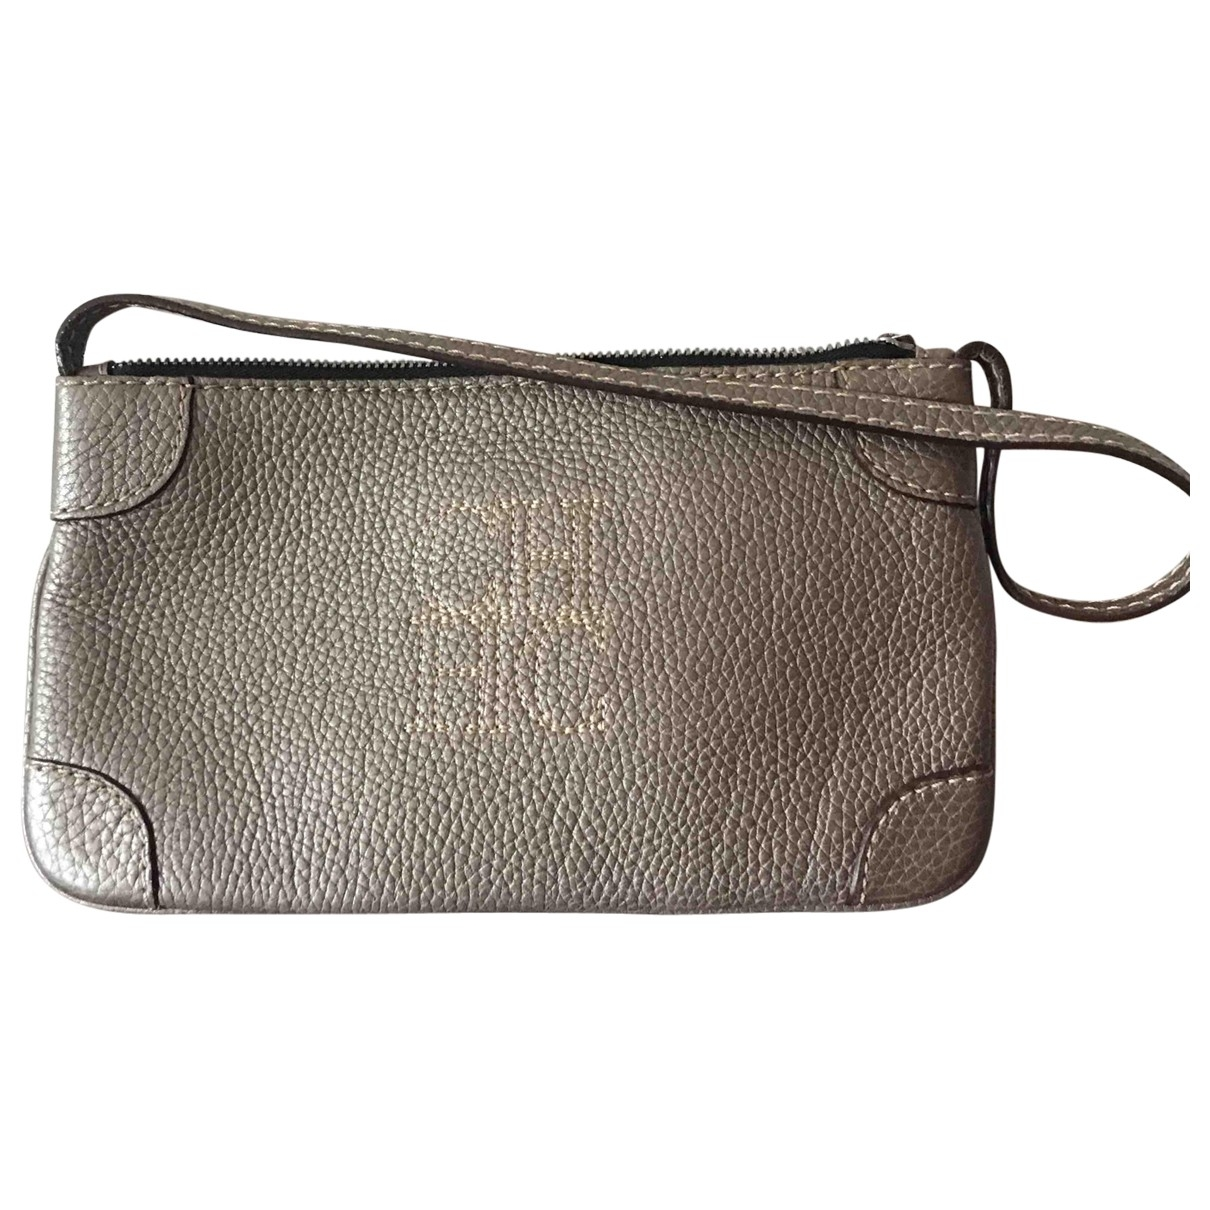 Carolina Herrera \N Clutch in  Grau Leder